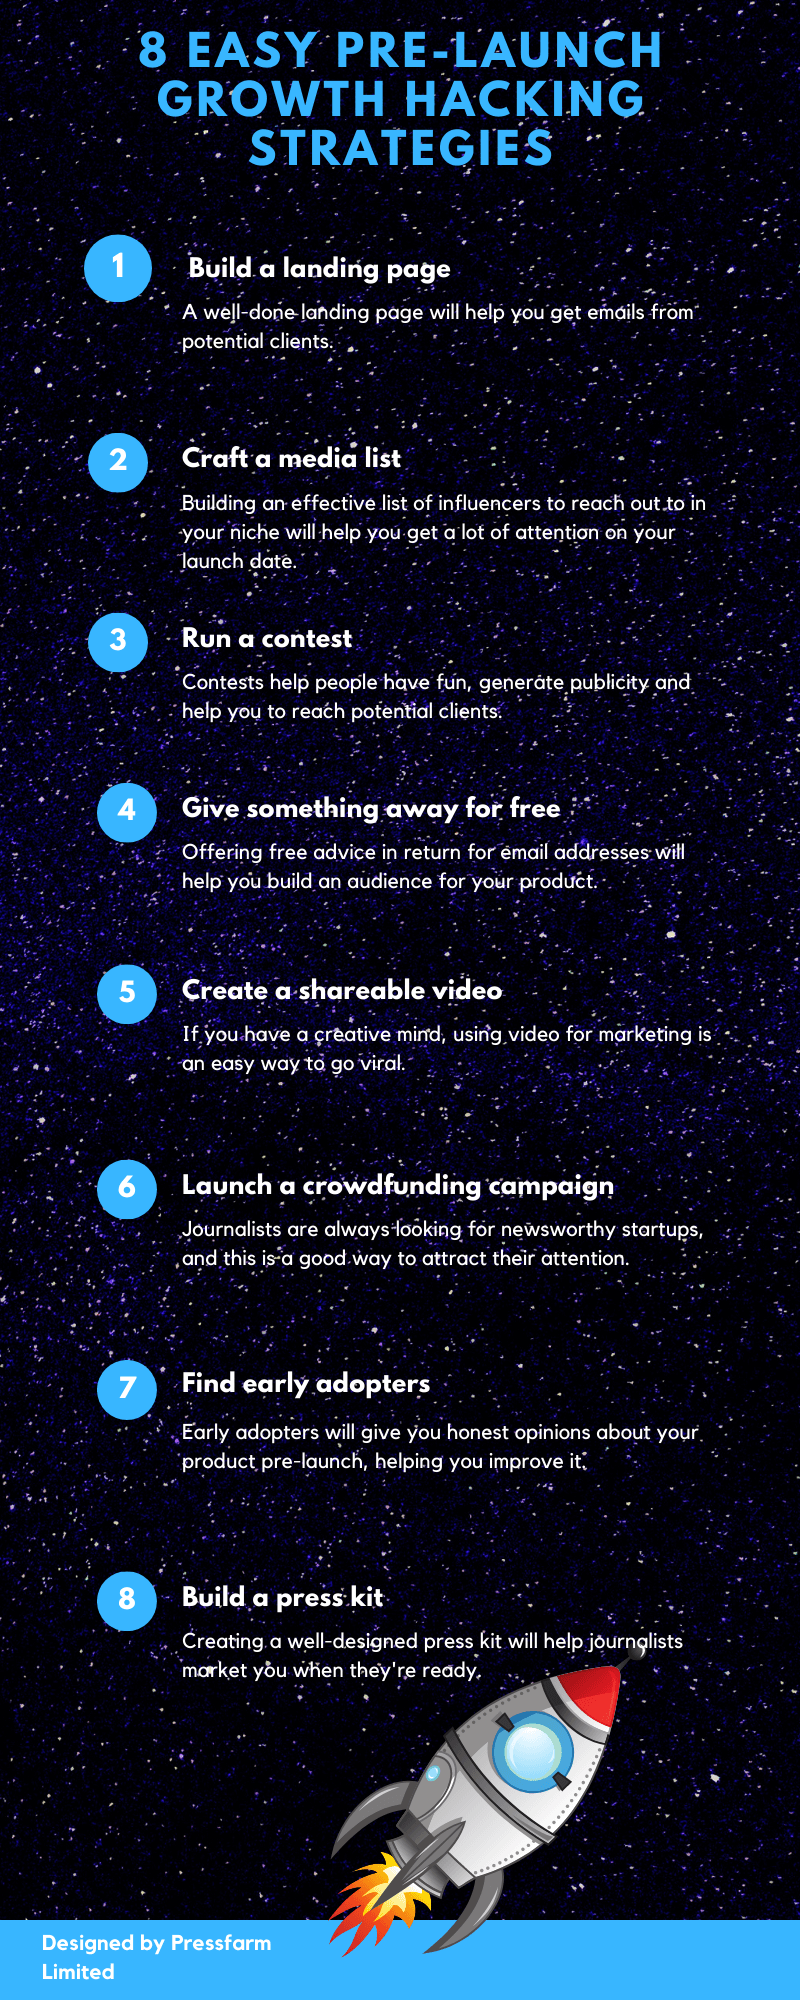 8 easy pre-launch growth hacking strategies